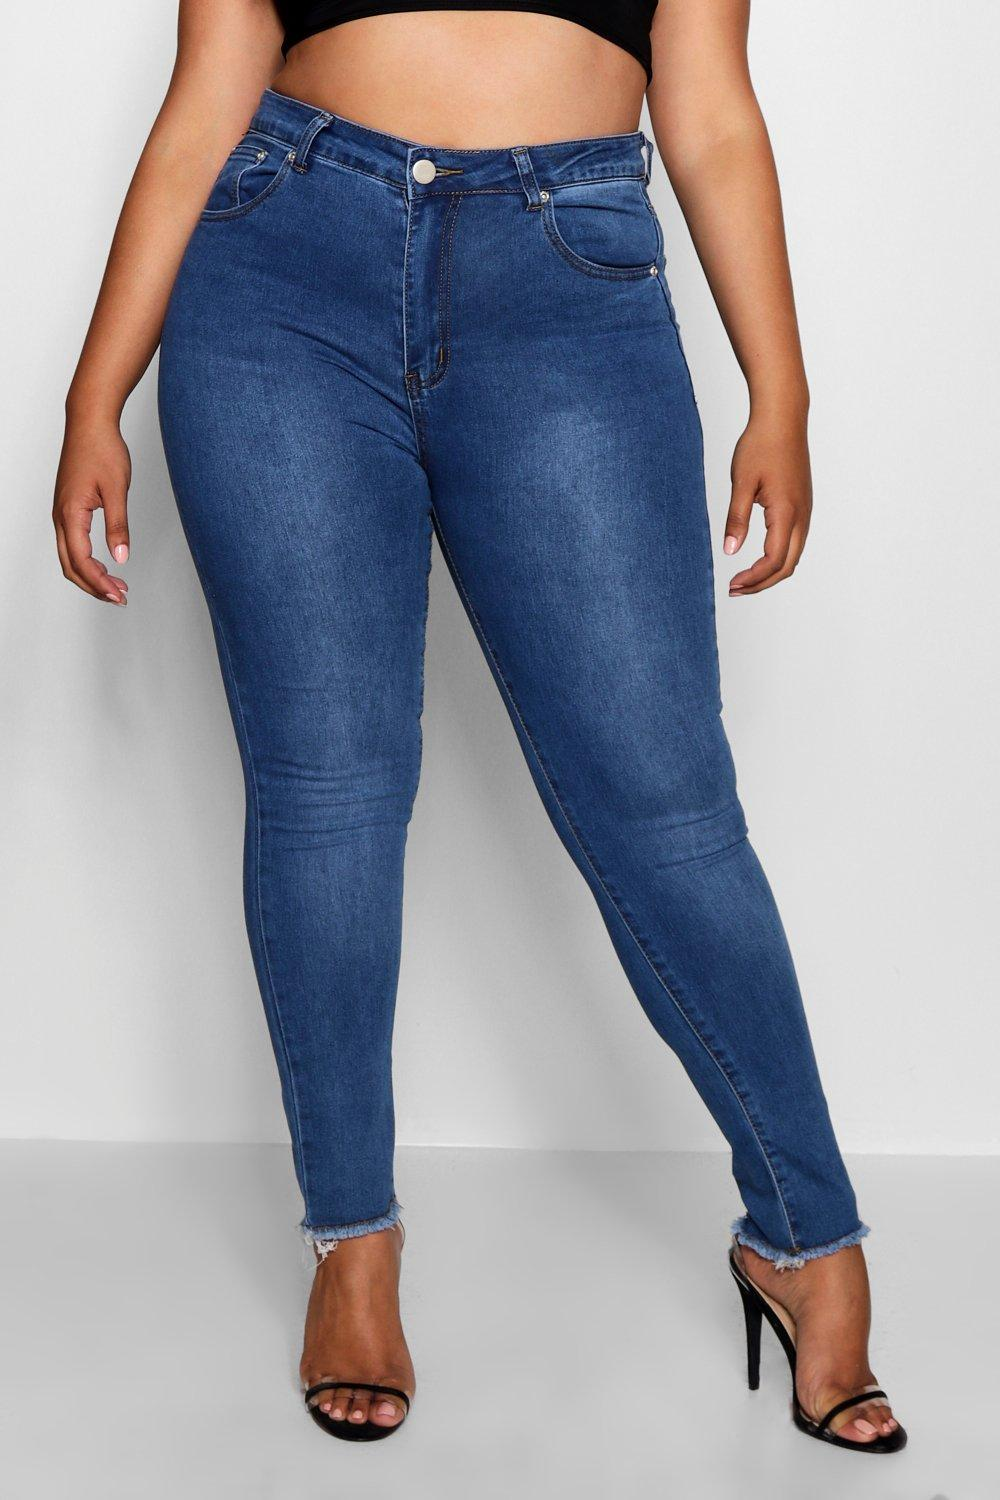 Plus Skinny Back Jeans blue mid Stretch Rip Rrqx6FRU